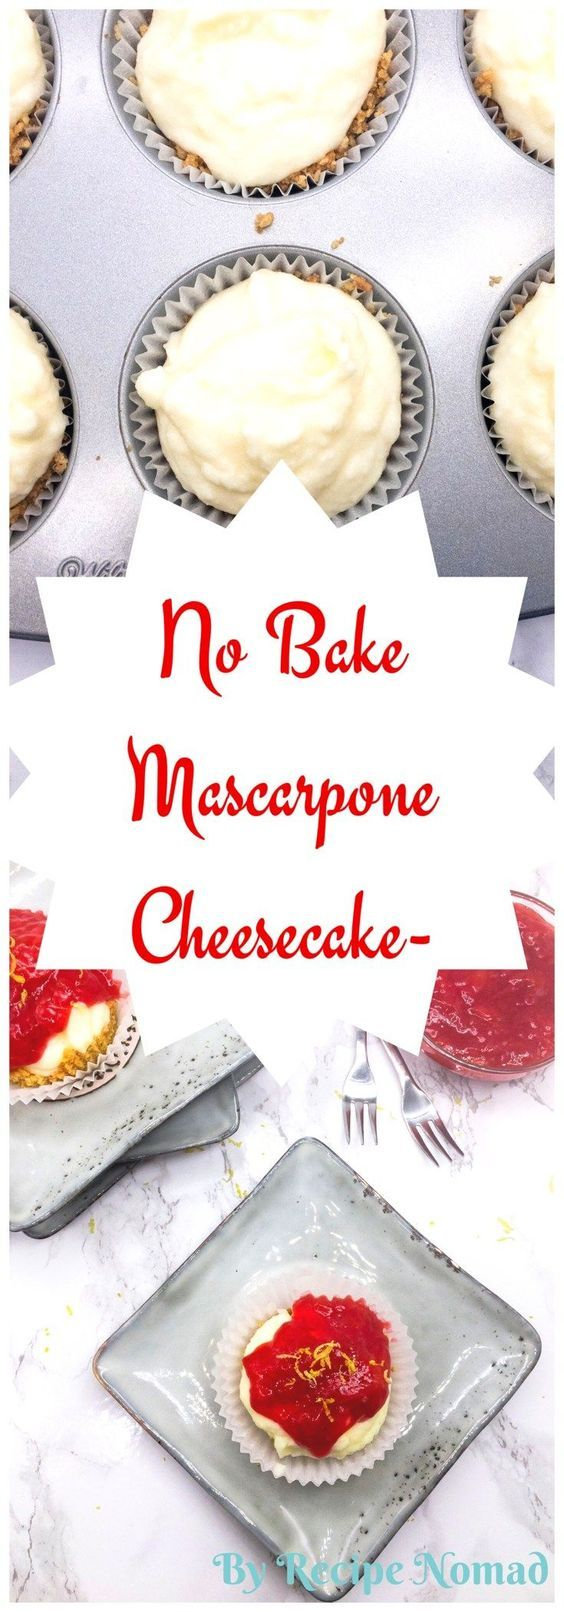 No Bake Mascarpone Cheesecake is simple to make and will definitely satisfy your sweet tooth!  http://www.recipenomad.com/no-bake-mascarpone-cheesecake/   No Bake Mascarpone Cheesecake | Recipe Nomad